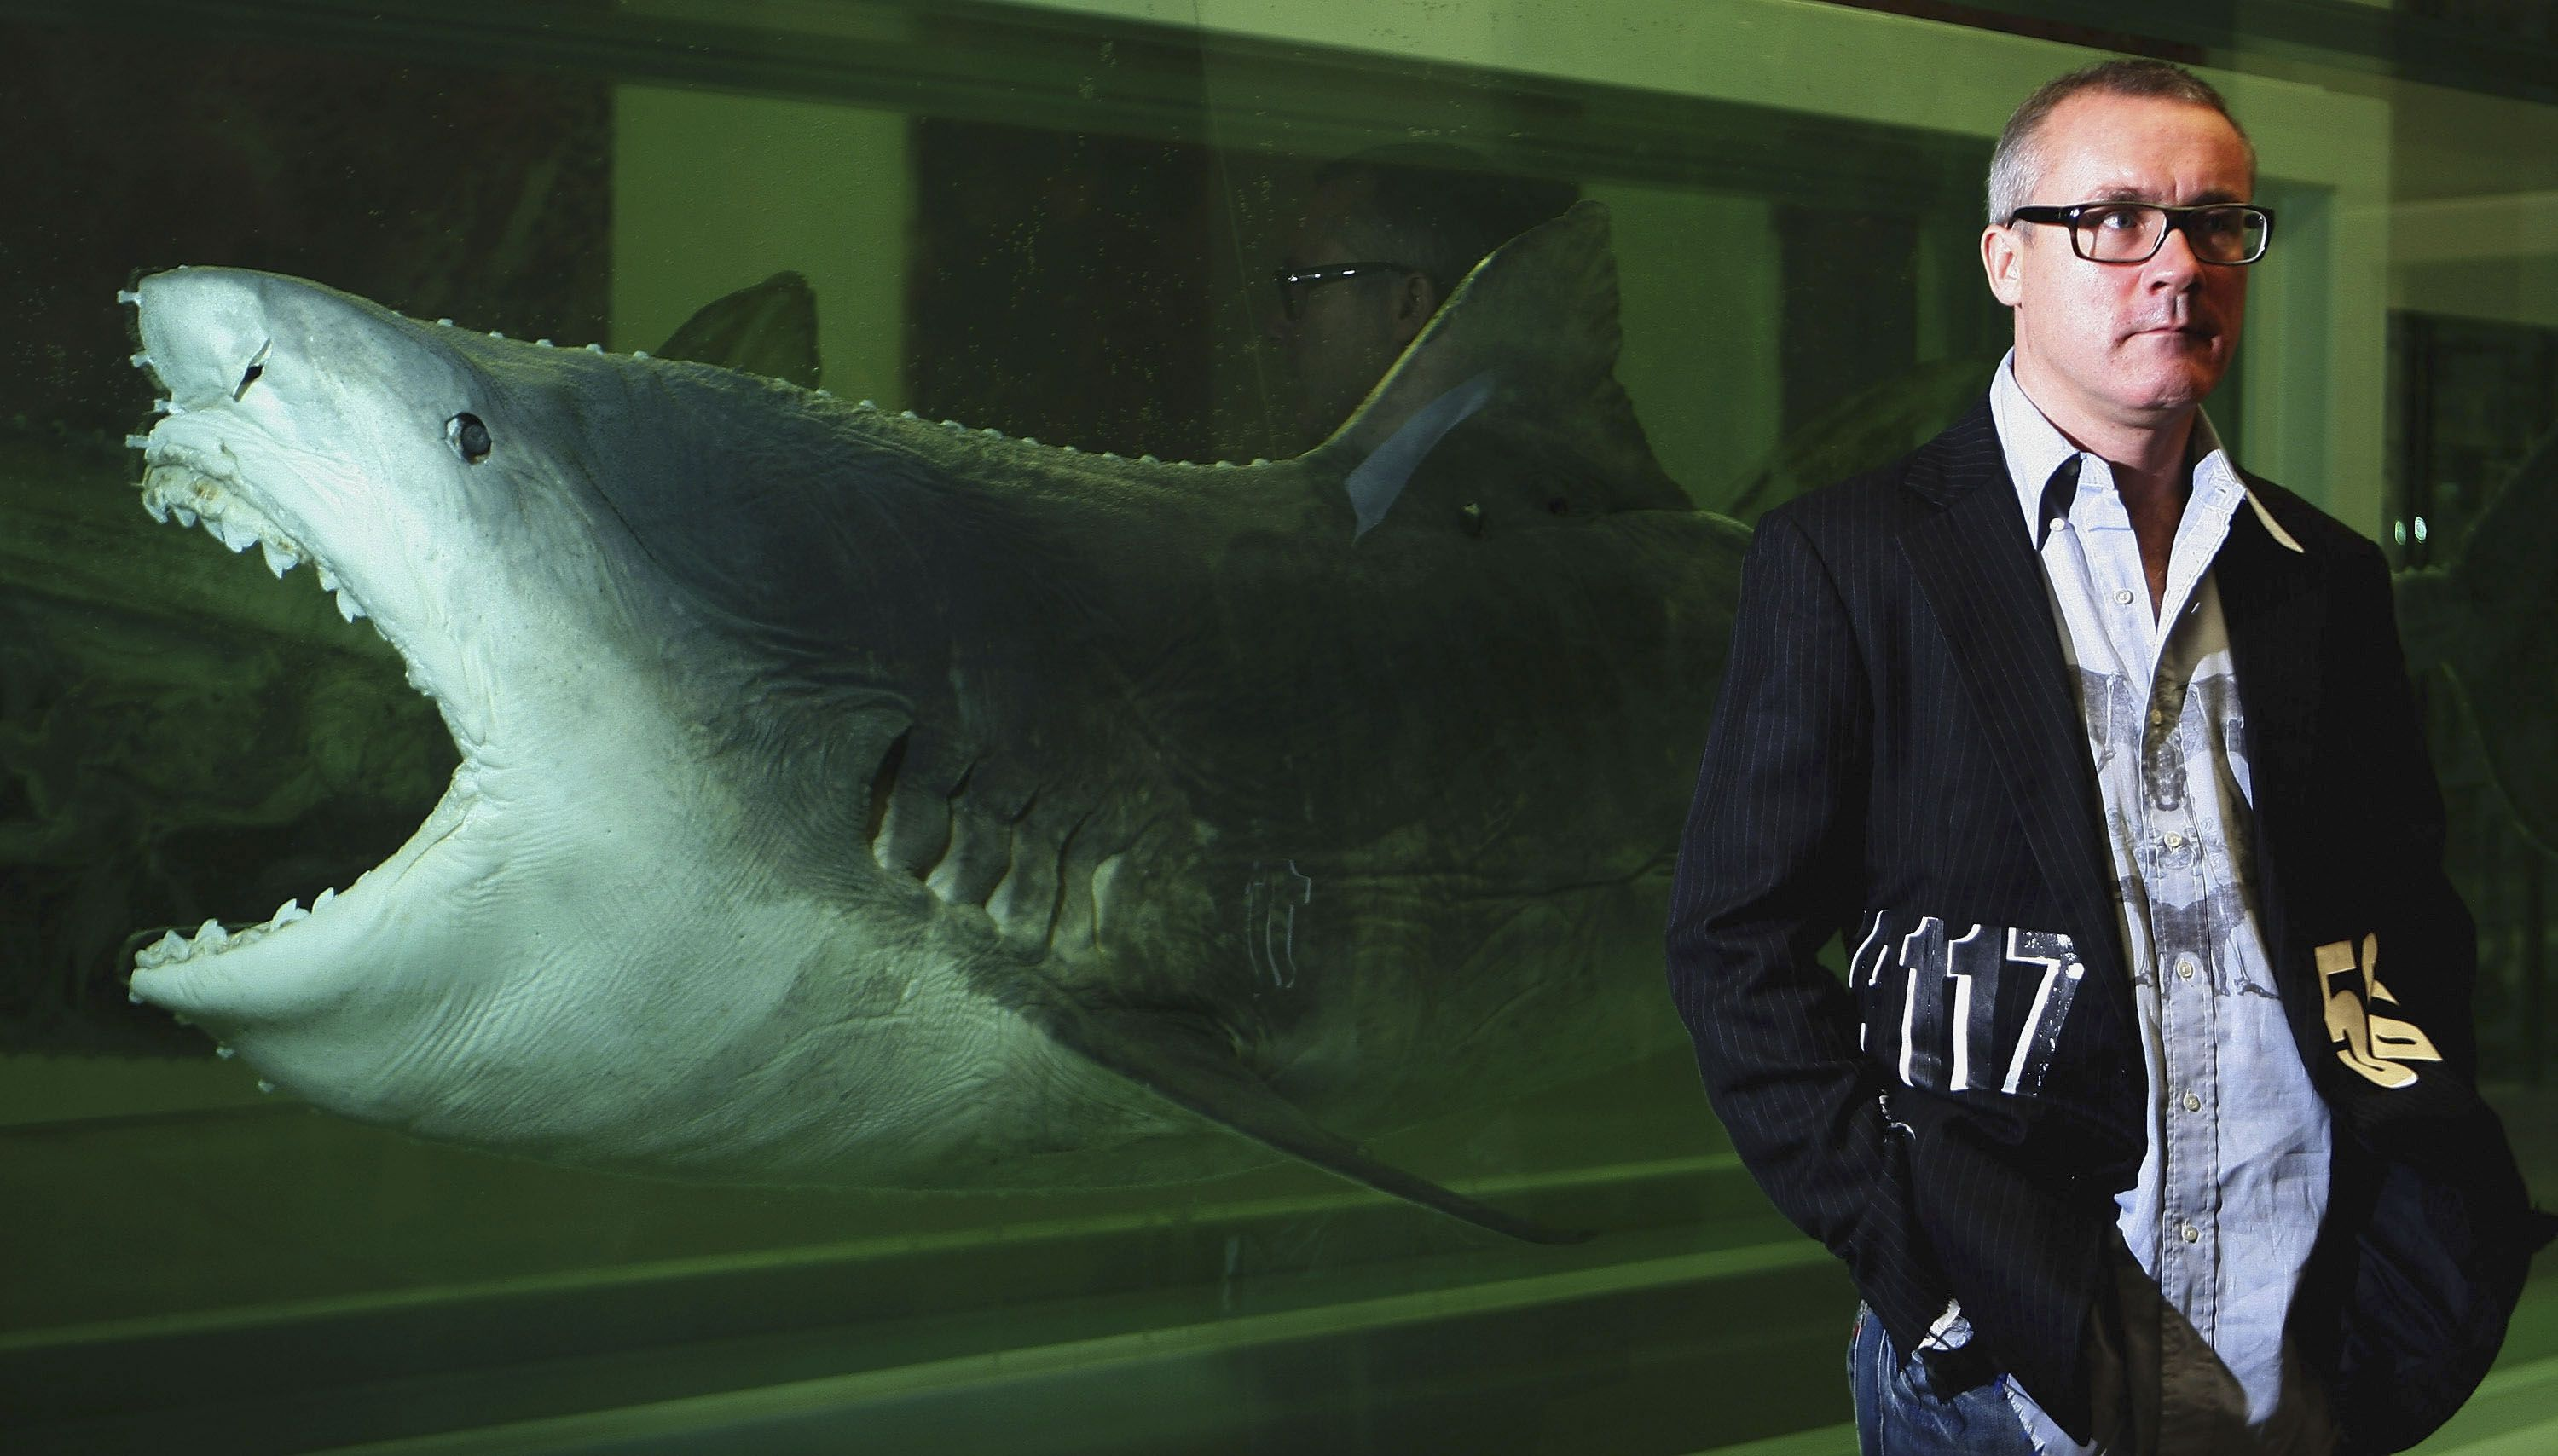 What Makes Damien Hirst Such a Controversial Artist?